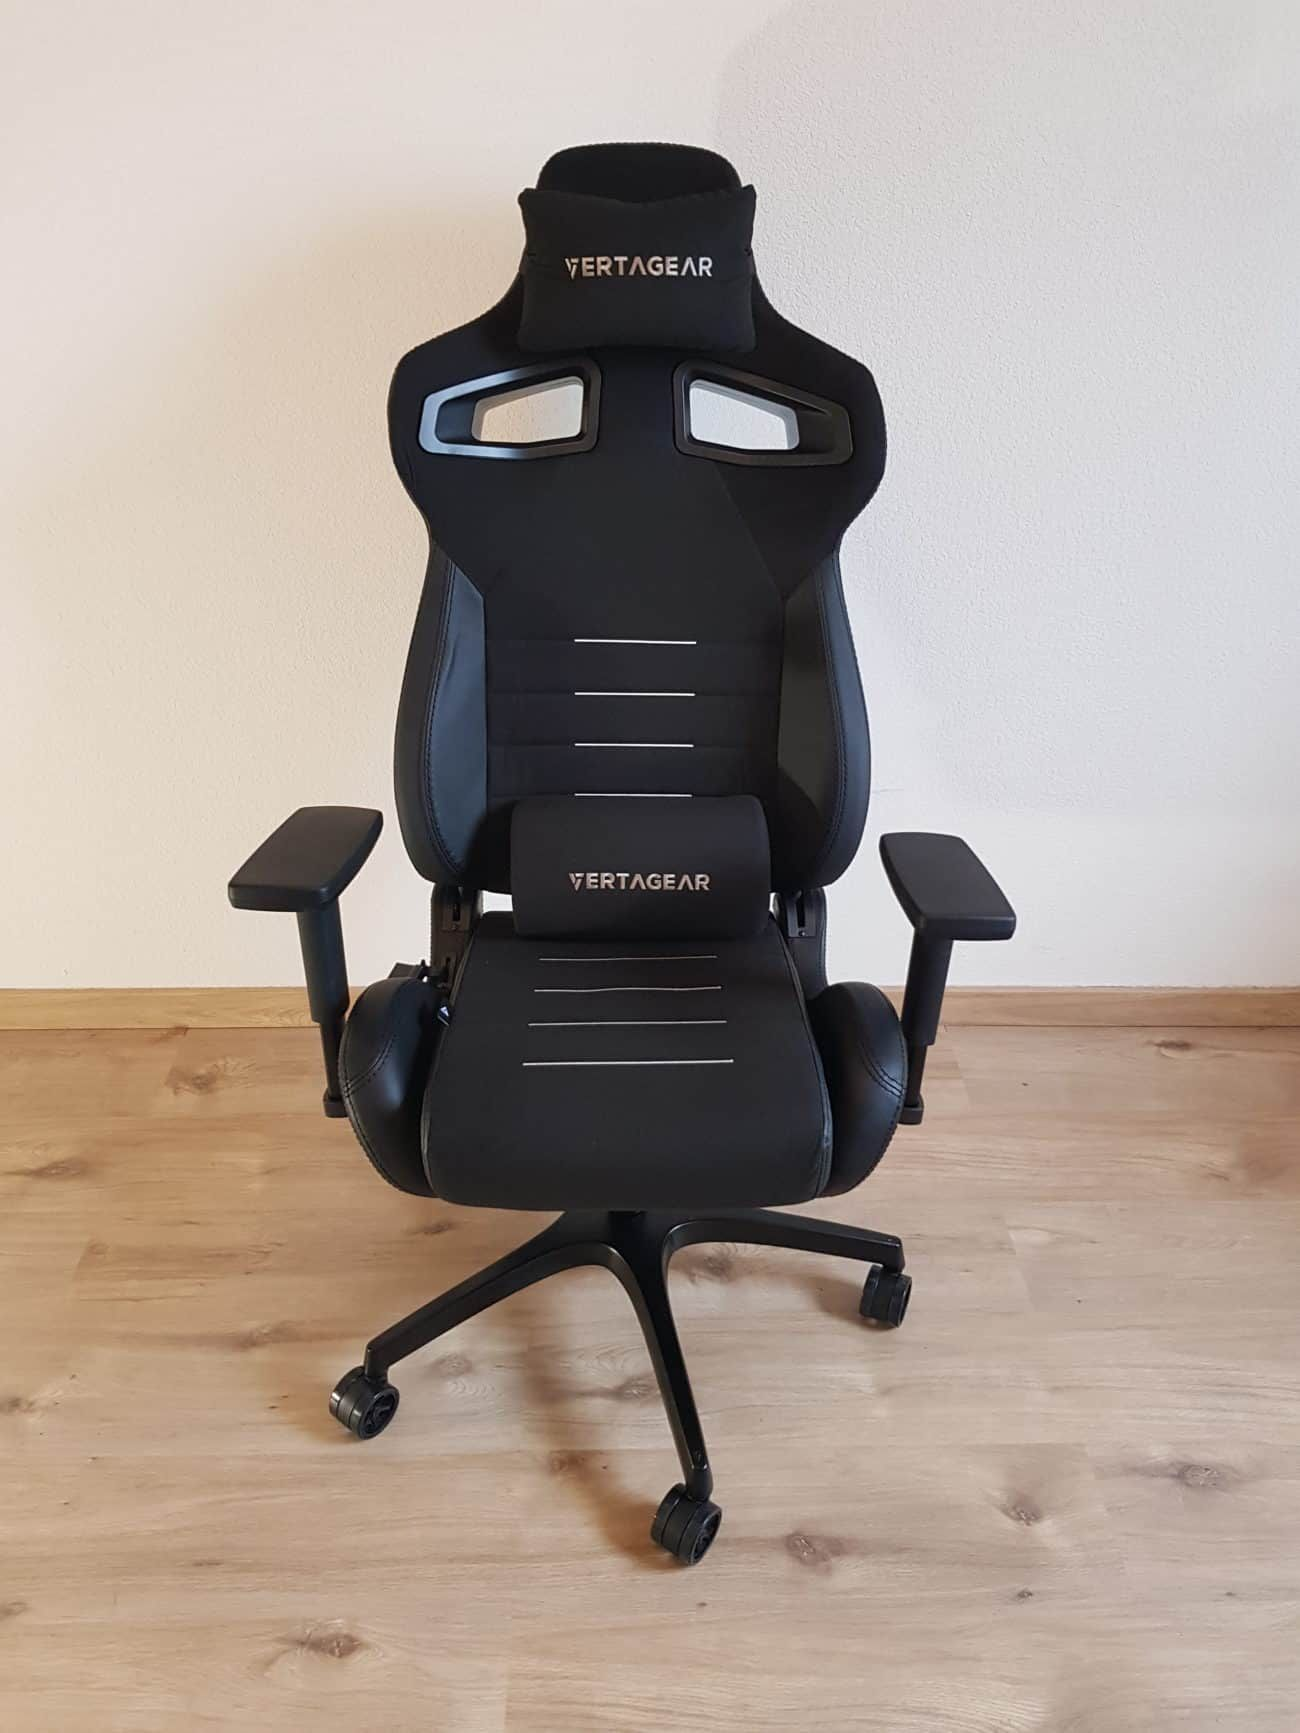 Vertagear PL4500 Review Can The RGB Lights Make It Up?